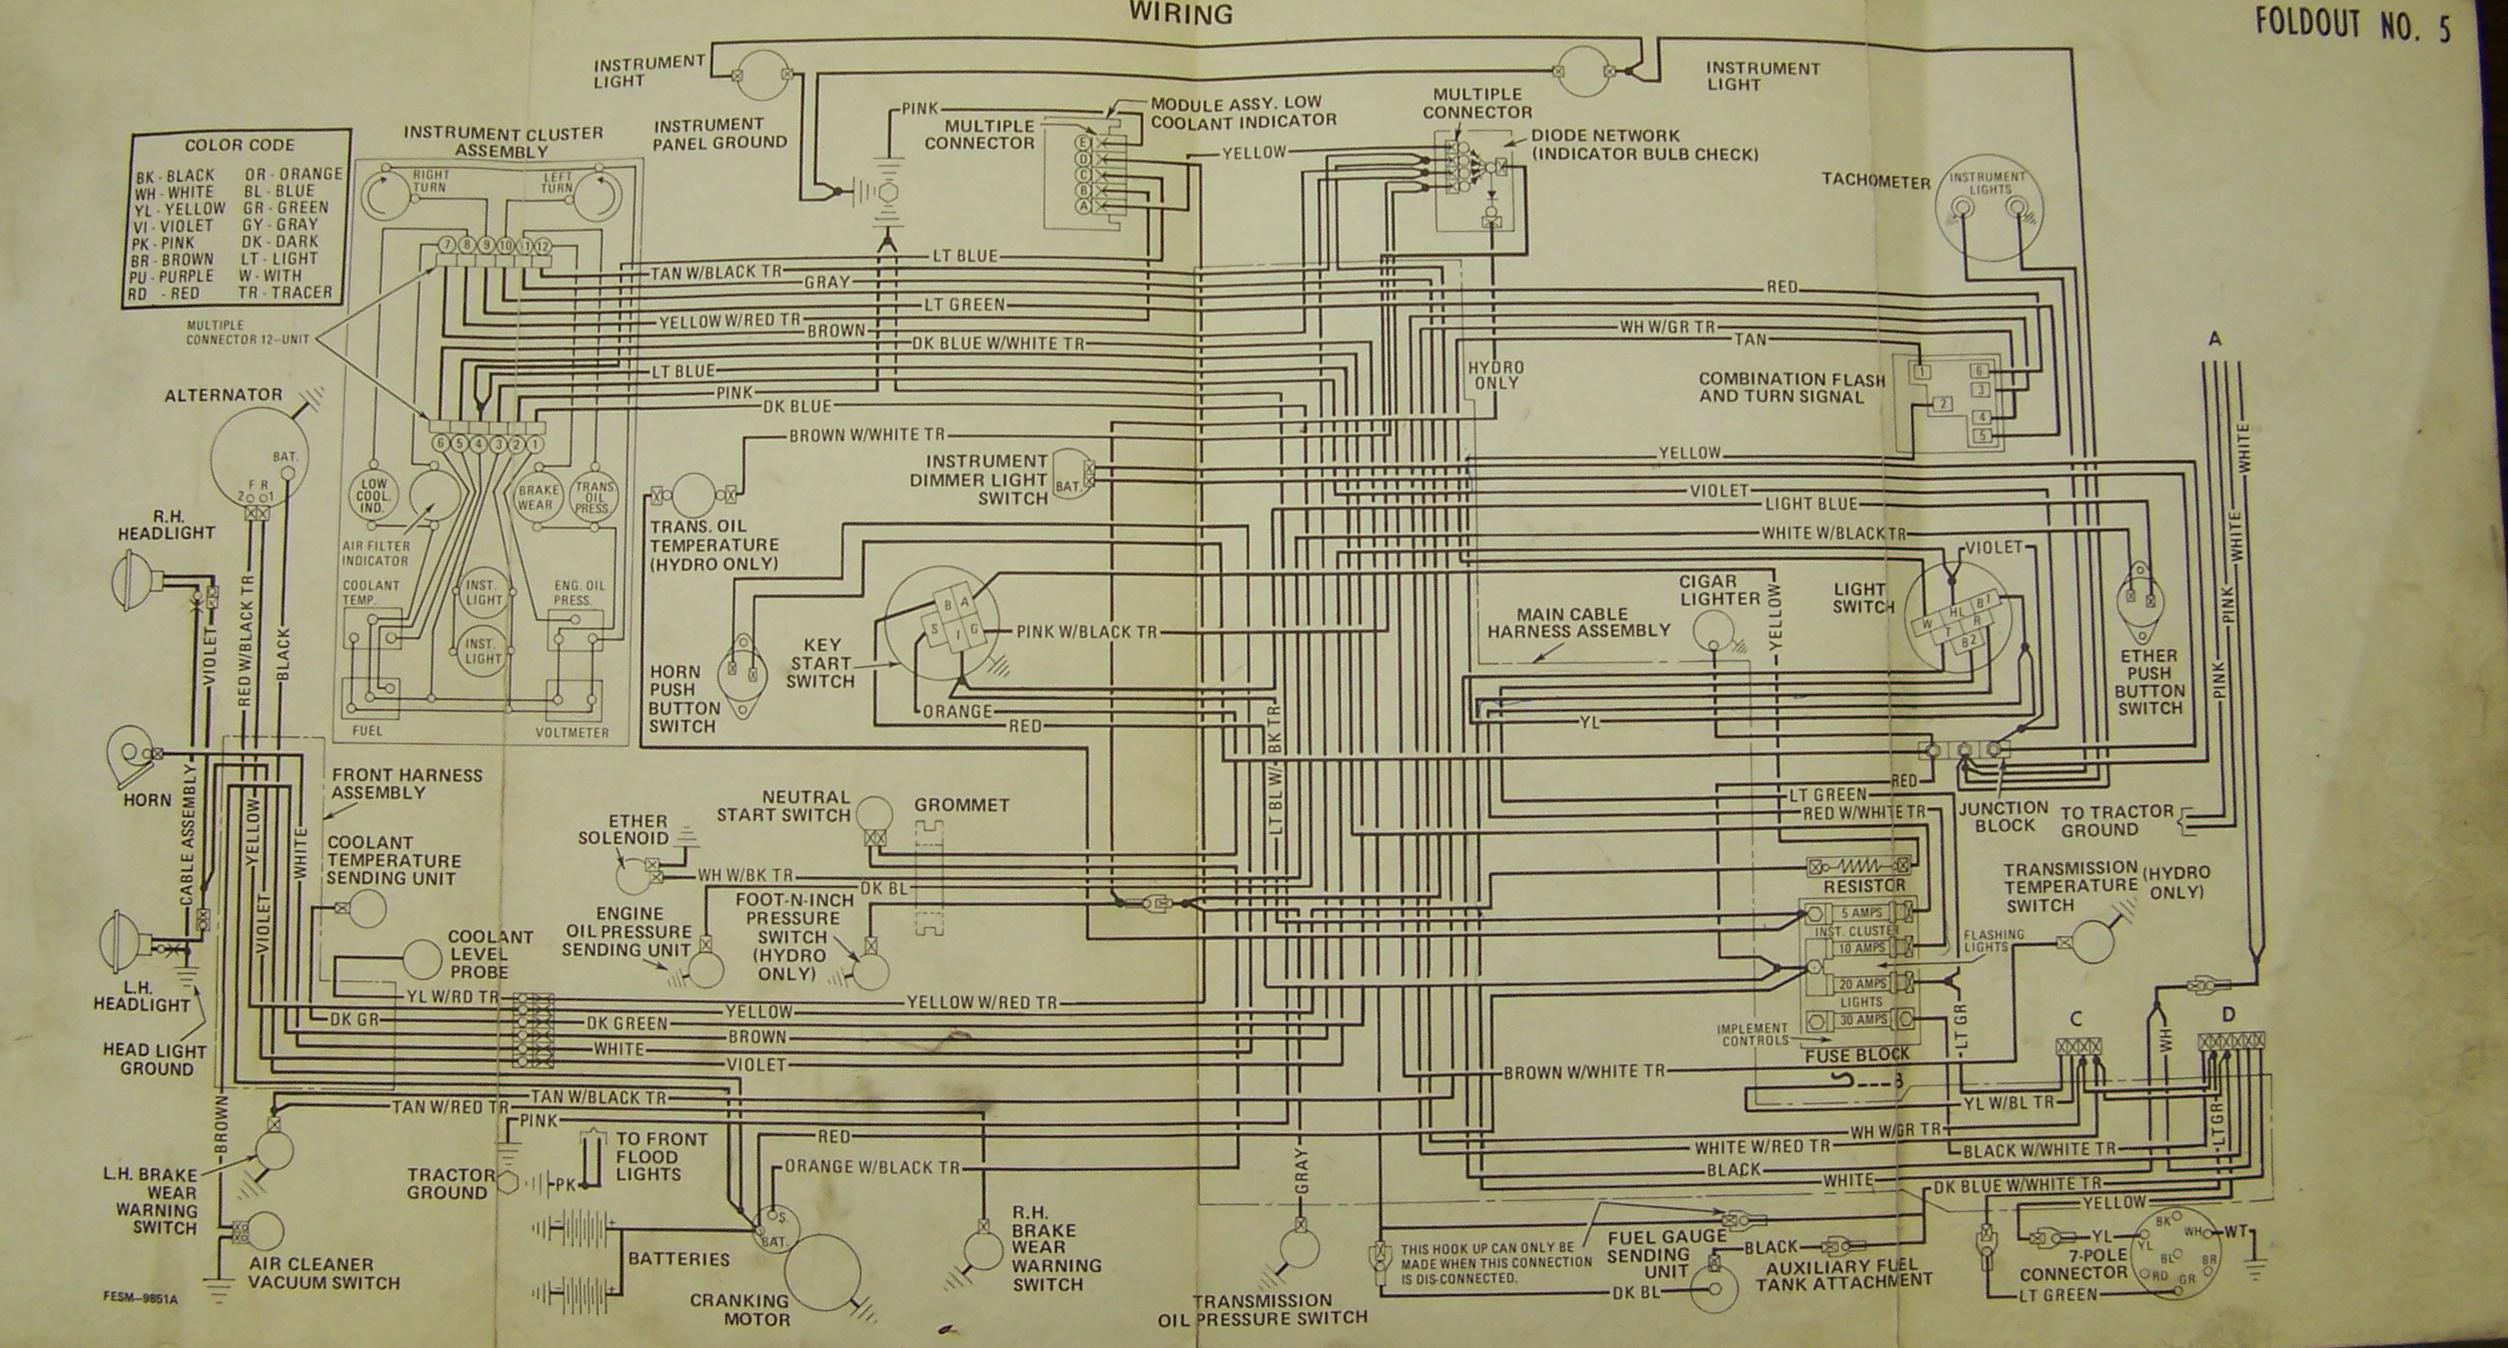 Wiring Diagram International 350 Utility Diagrams Chevy Engine Carter Gruenewald Co Inc Ih Farmall Tractor Electrical Rh Cngco Com